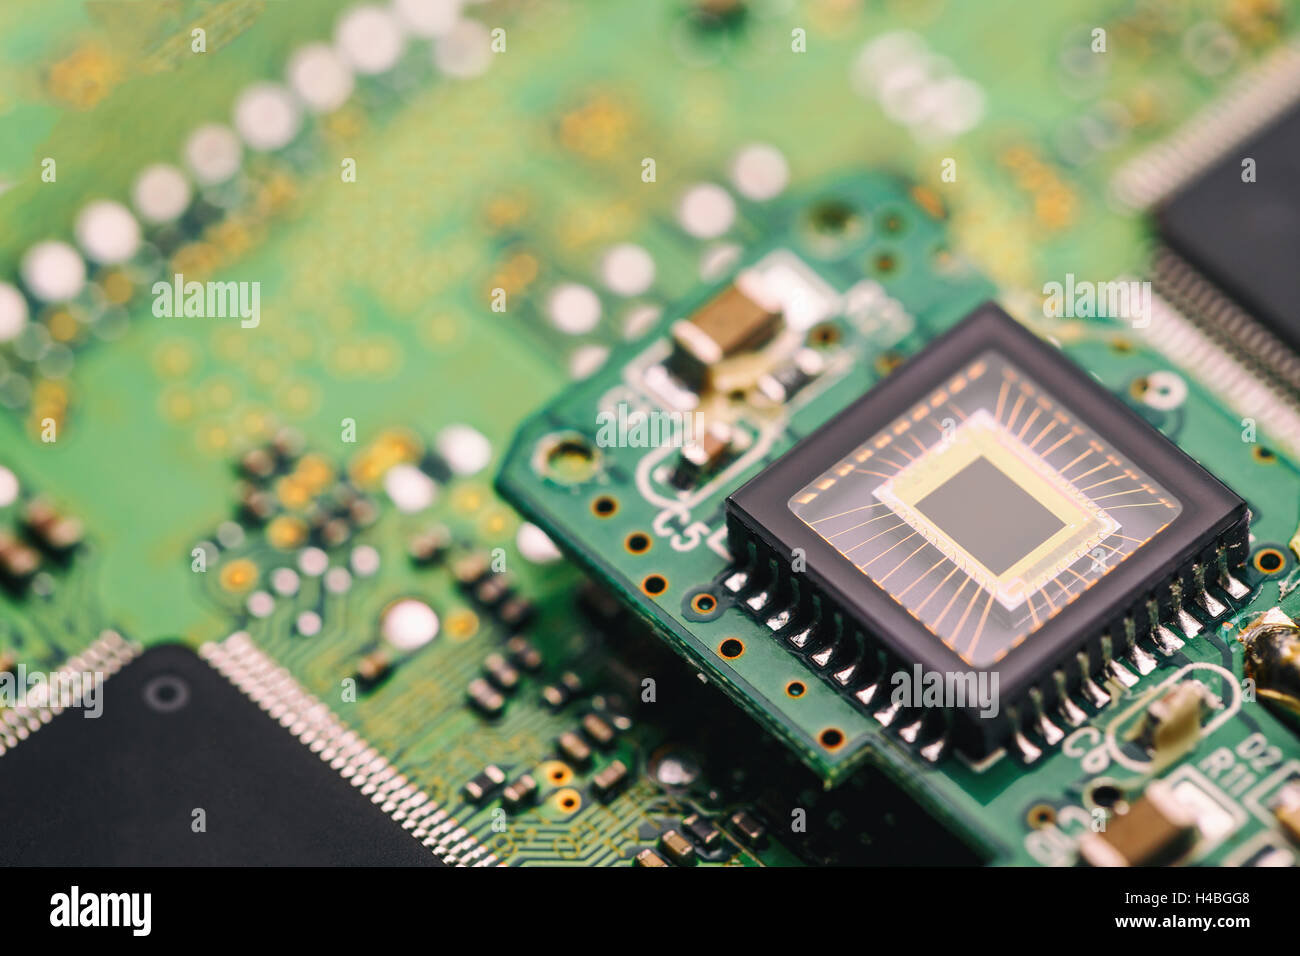 Concept of technology and future, microchip interconnected - Stock Image